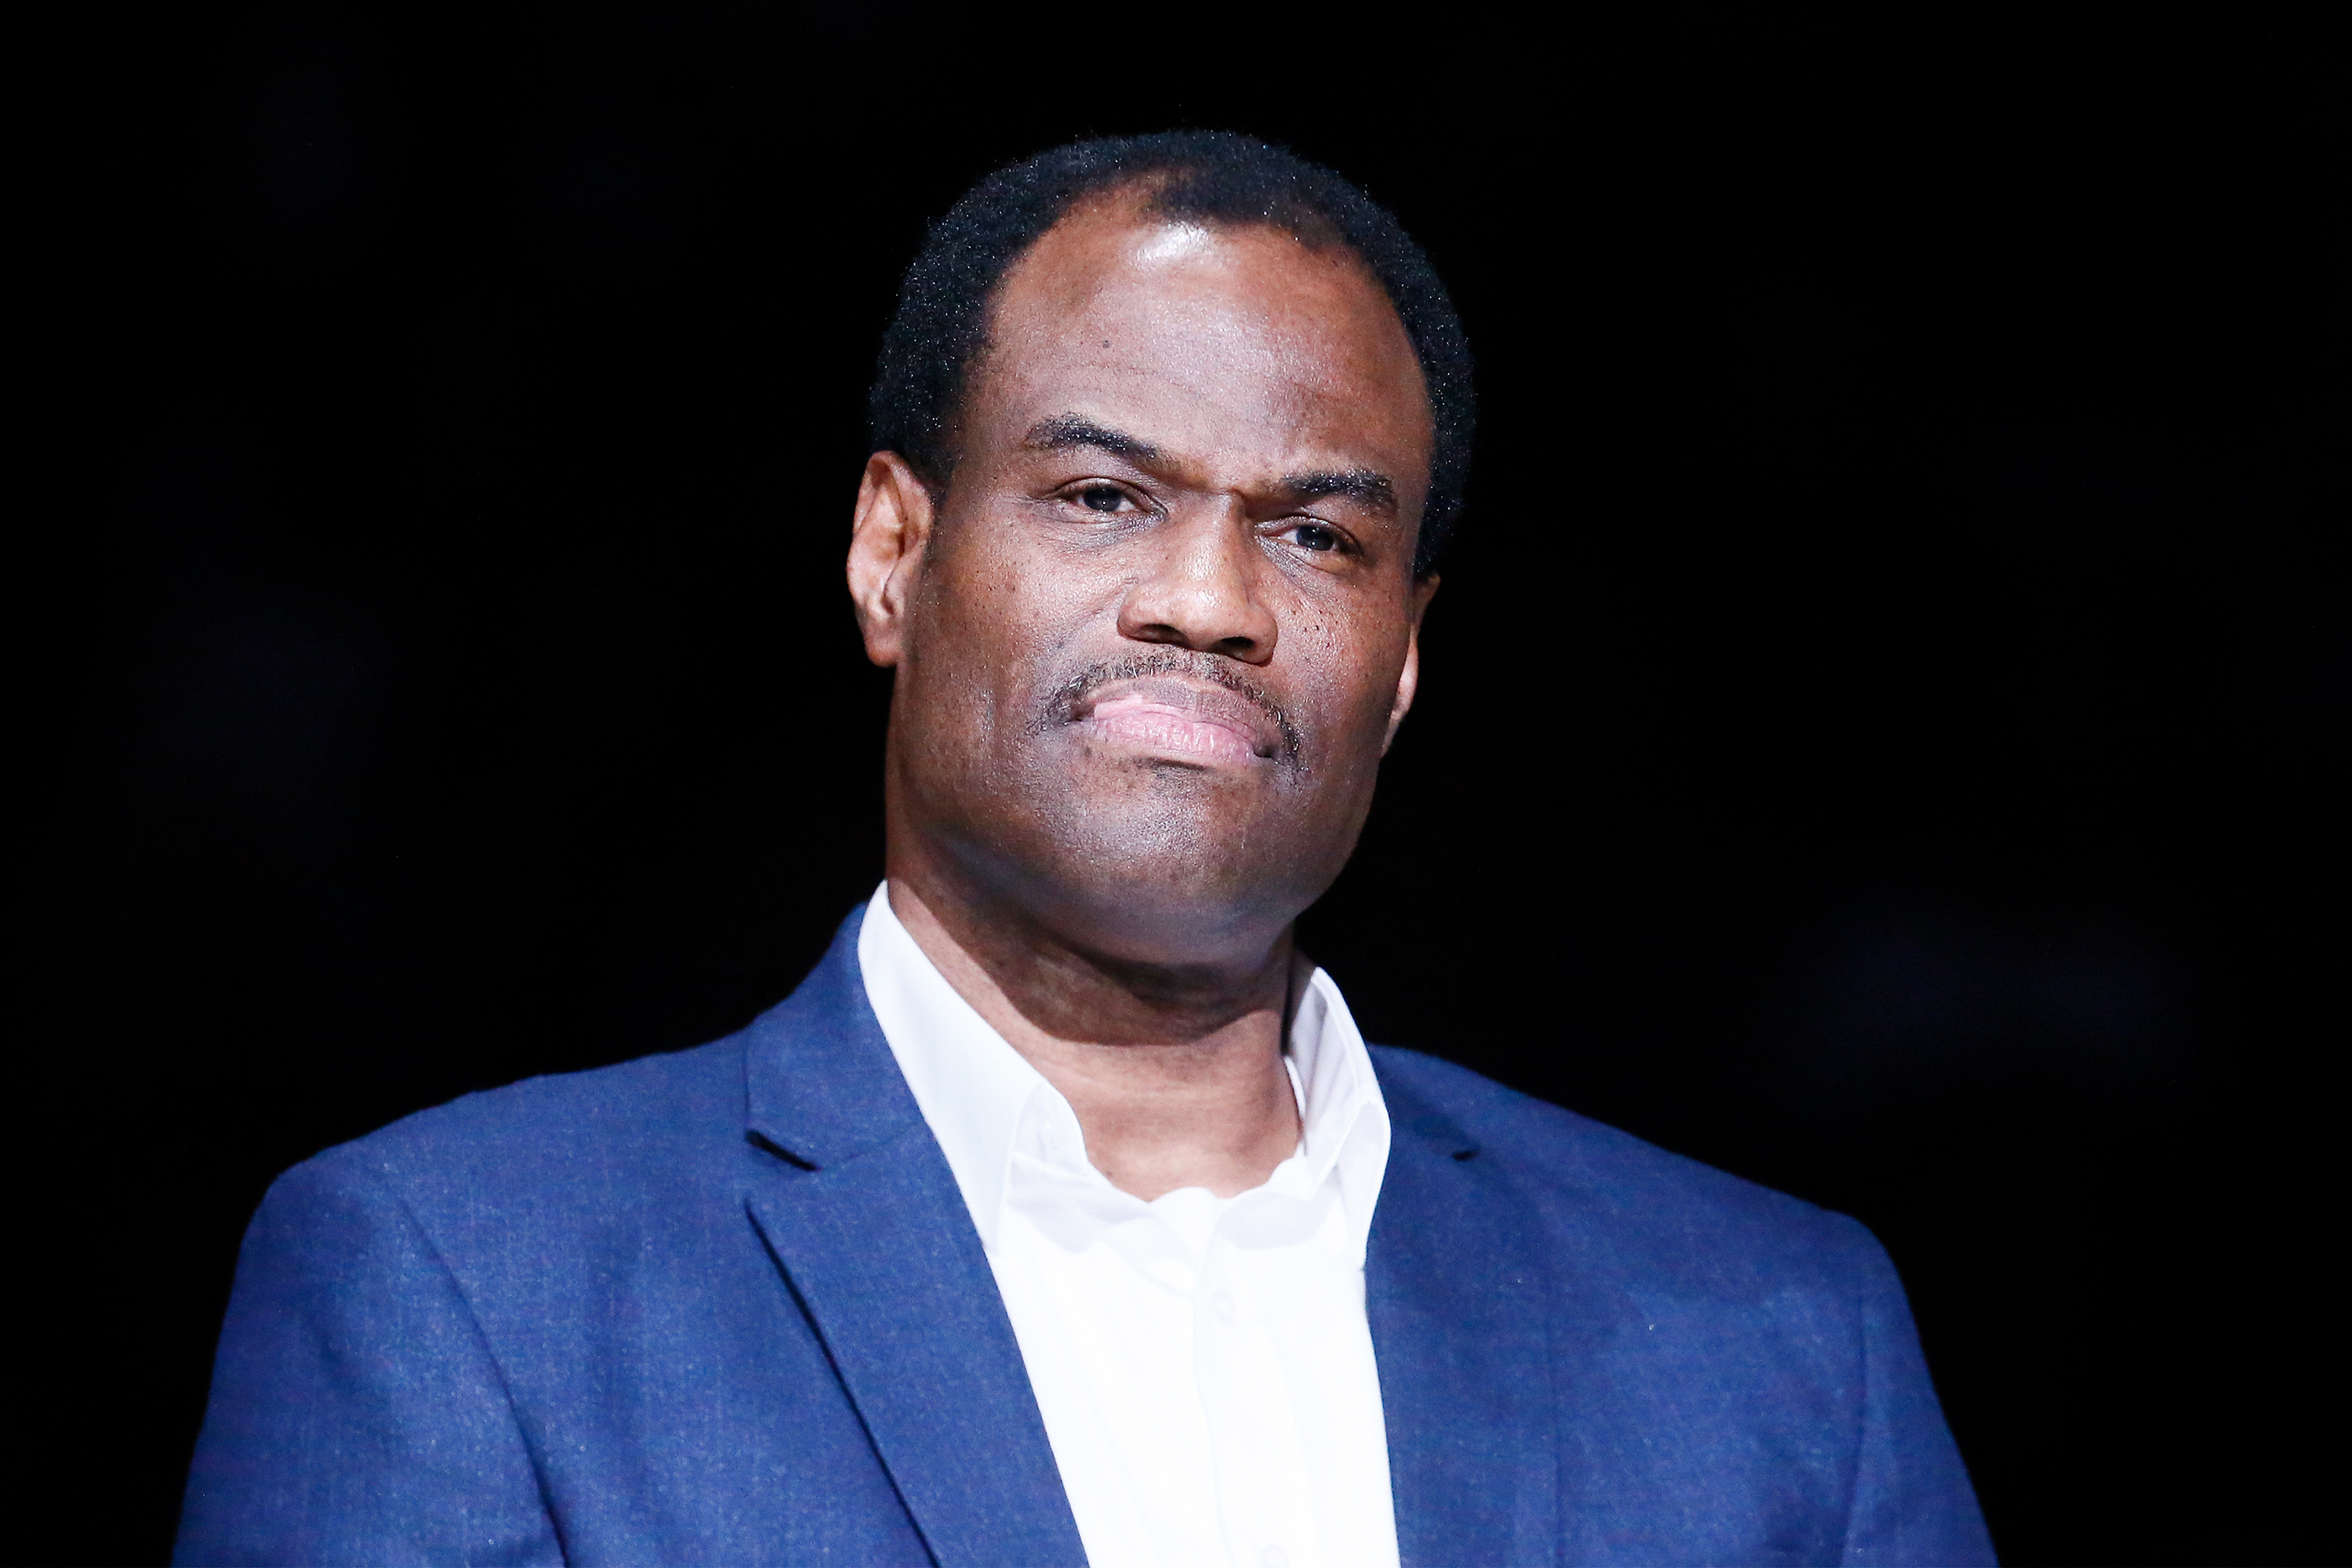 NBA Hall of Famer David Robinson says the black community is tired of business as usual